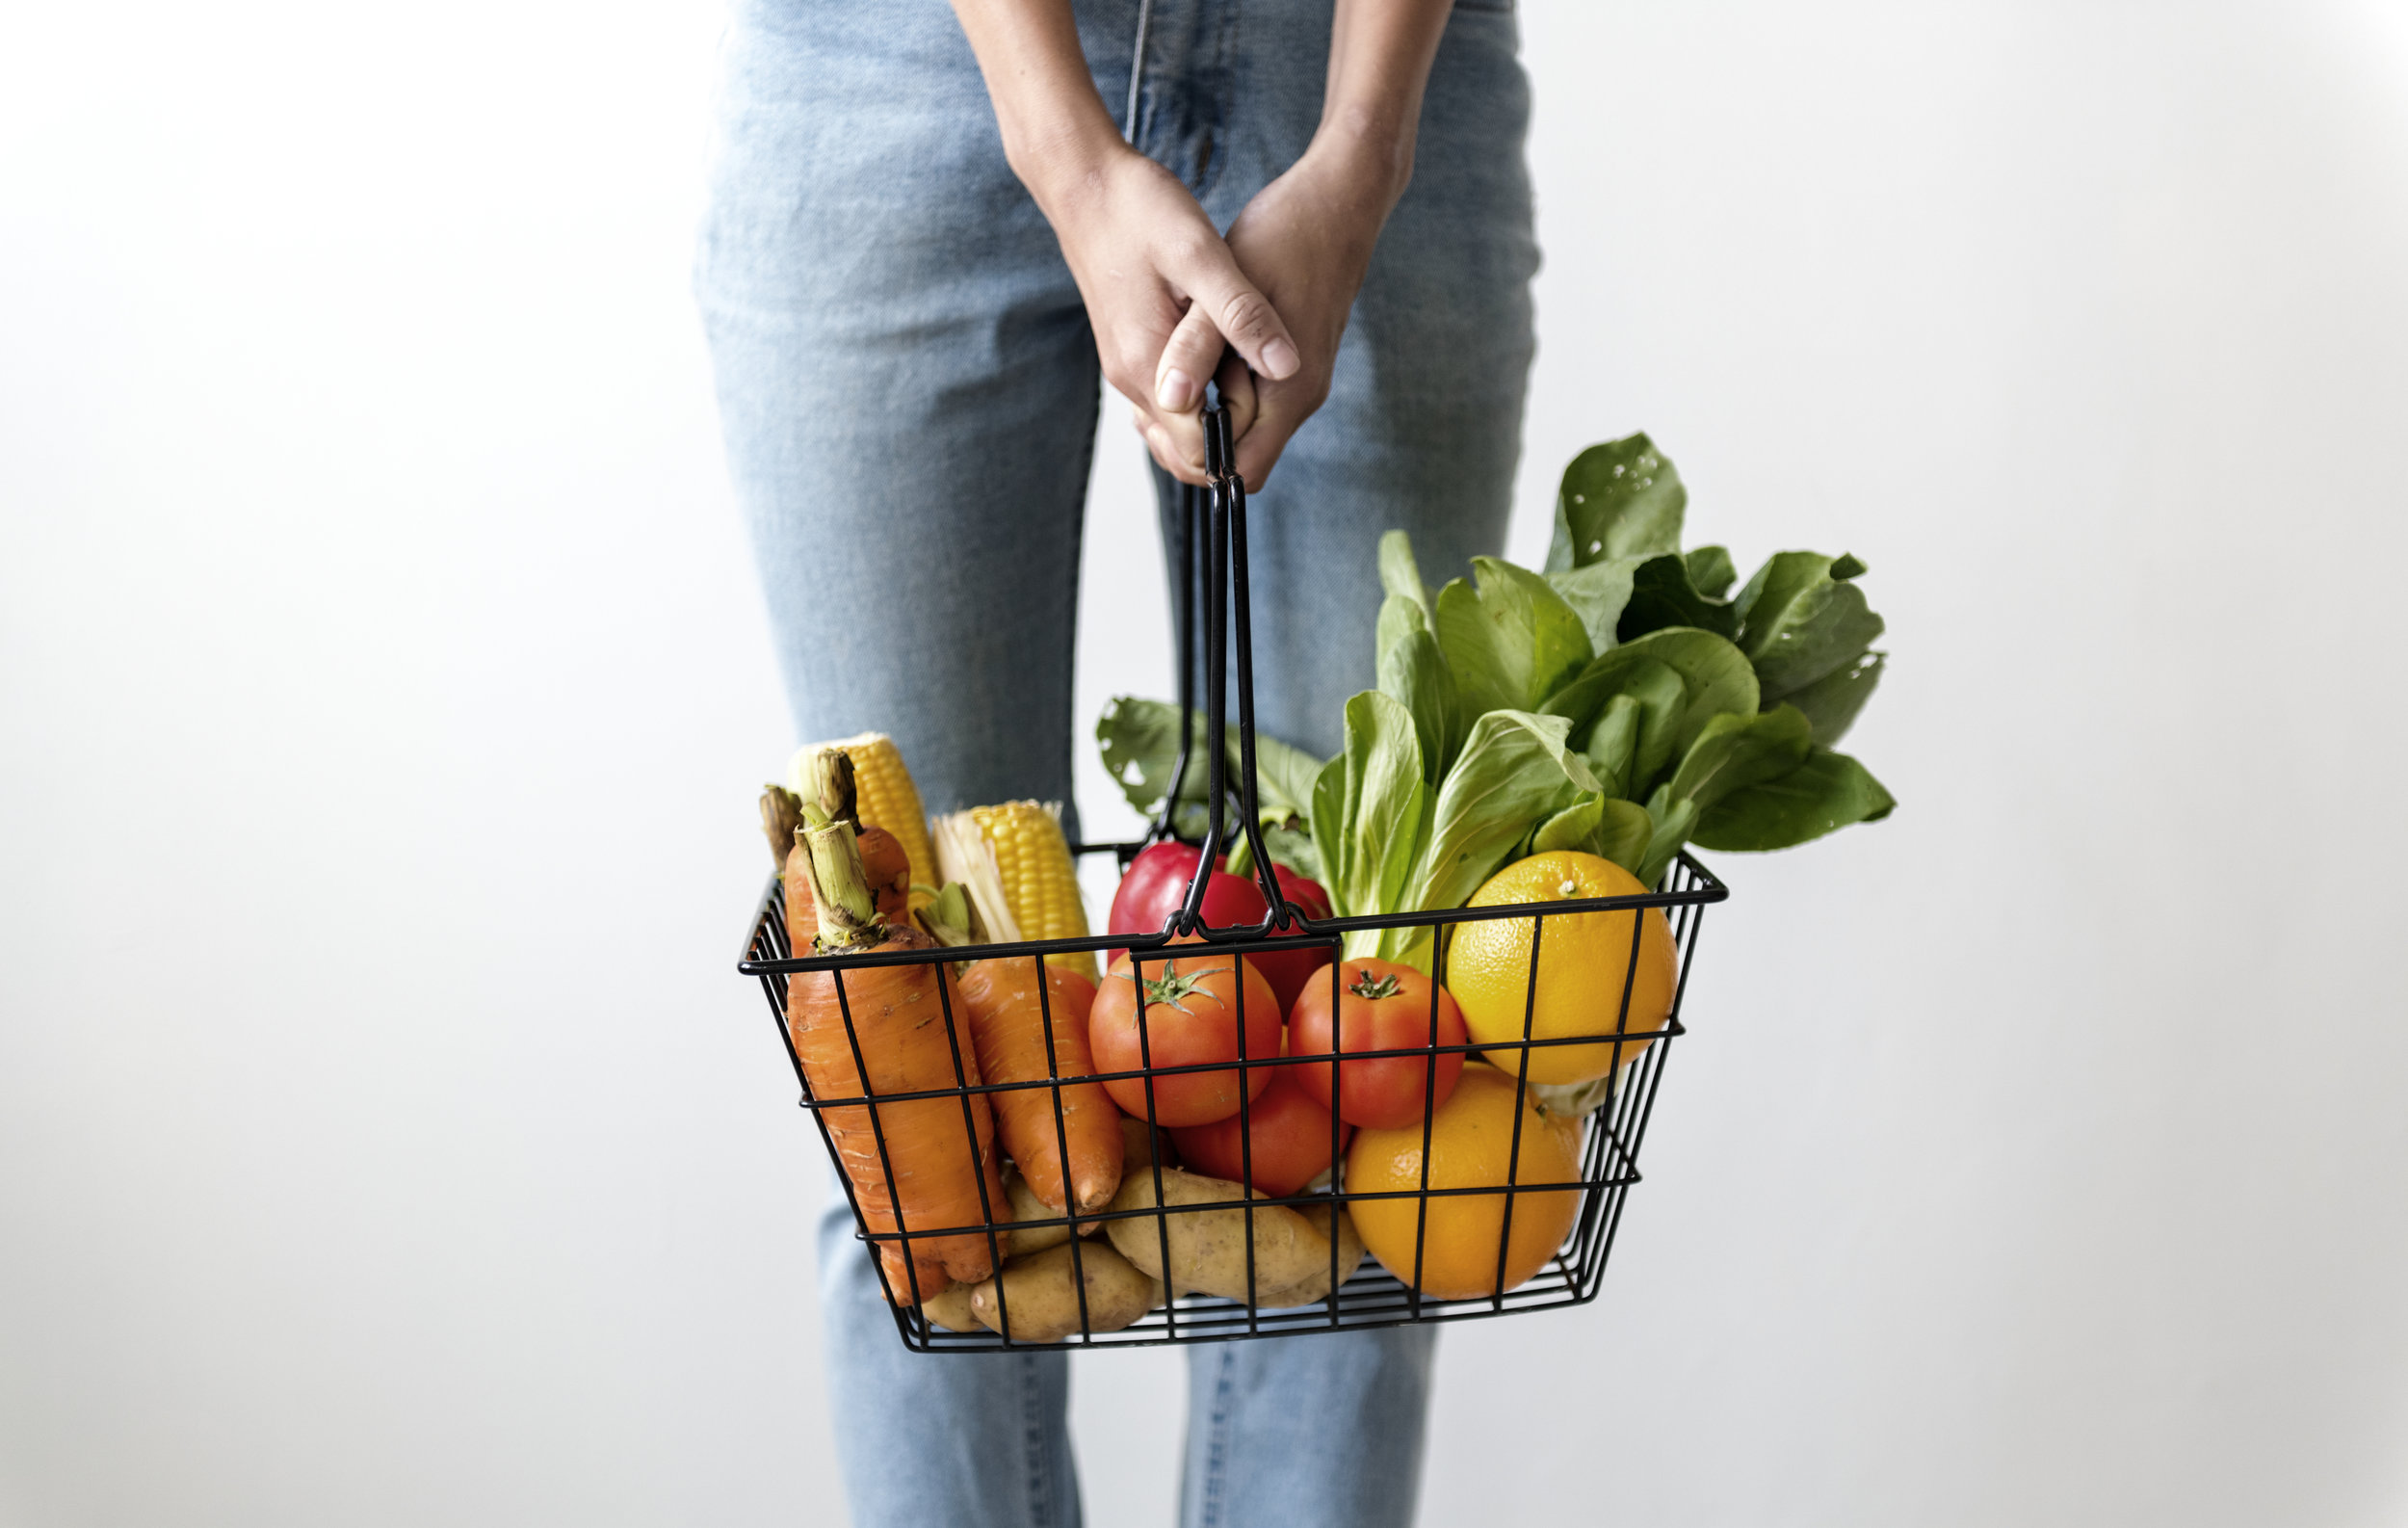 when it comes to groceries – every dollar counts. -